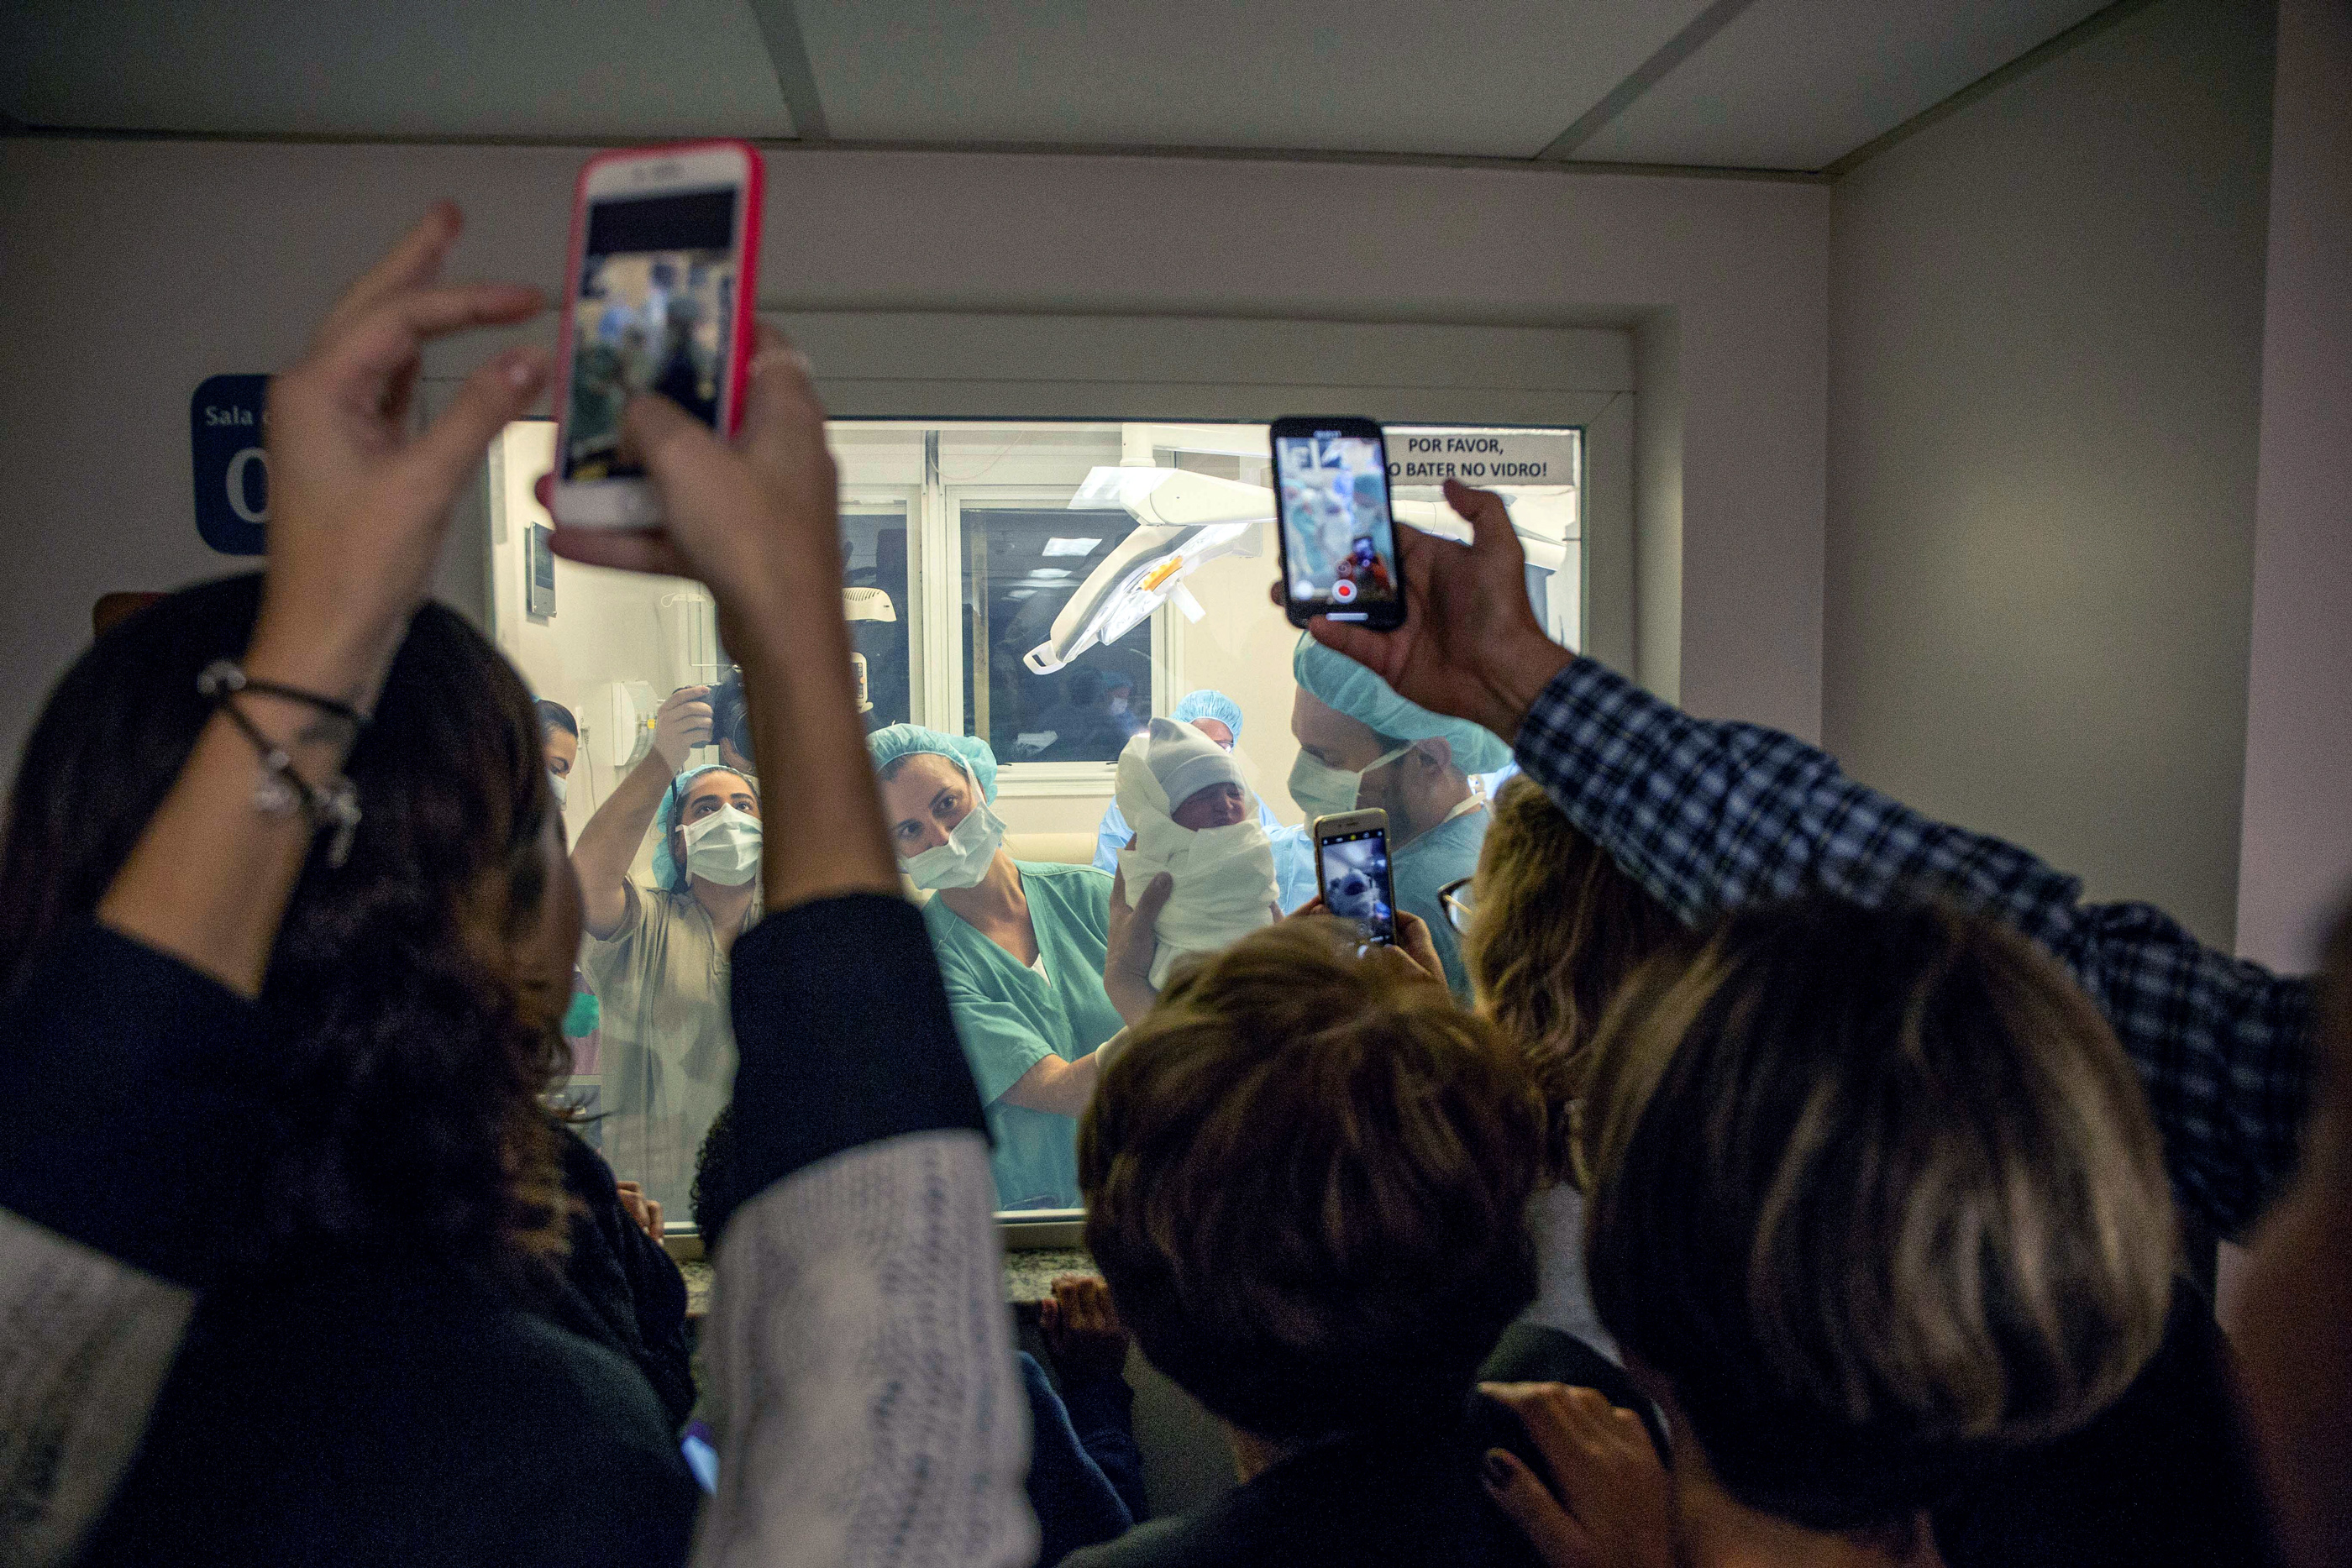 Relatives photograph the moment when Mariana Casmalla gave birth to Lorena via C-section, in the Maternity Hospital Albert Einstein on May 24 in São Paulo.